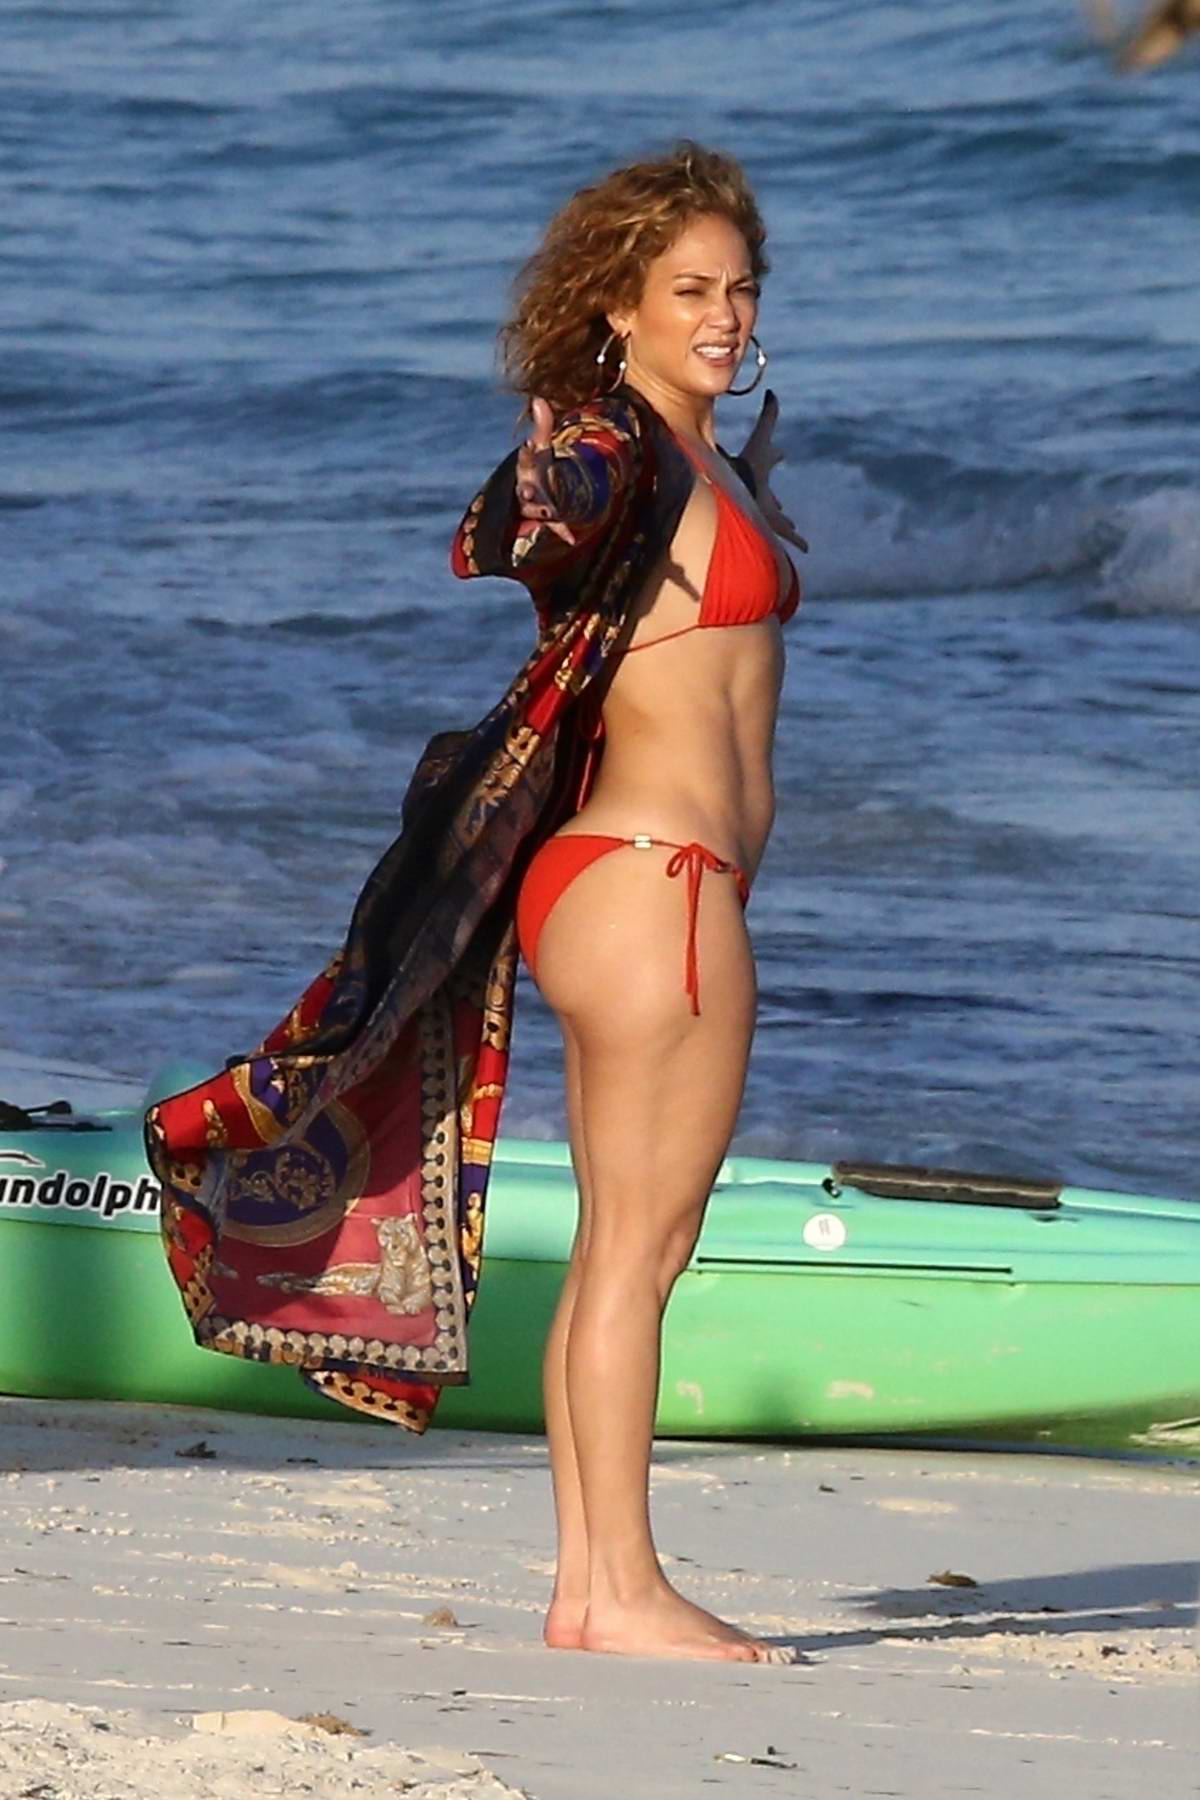 Jennifer Lopez stuns in a red bikini while enjoying the beach in Turks and Caicos